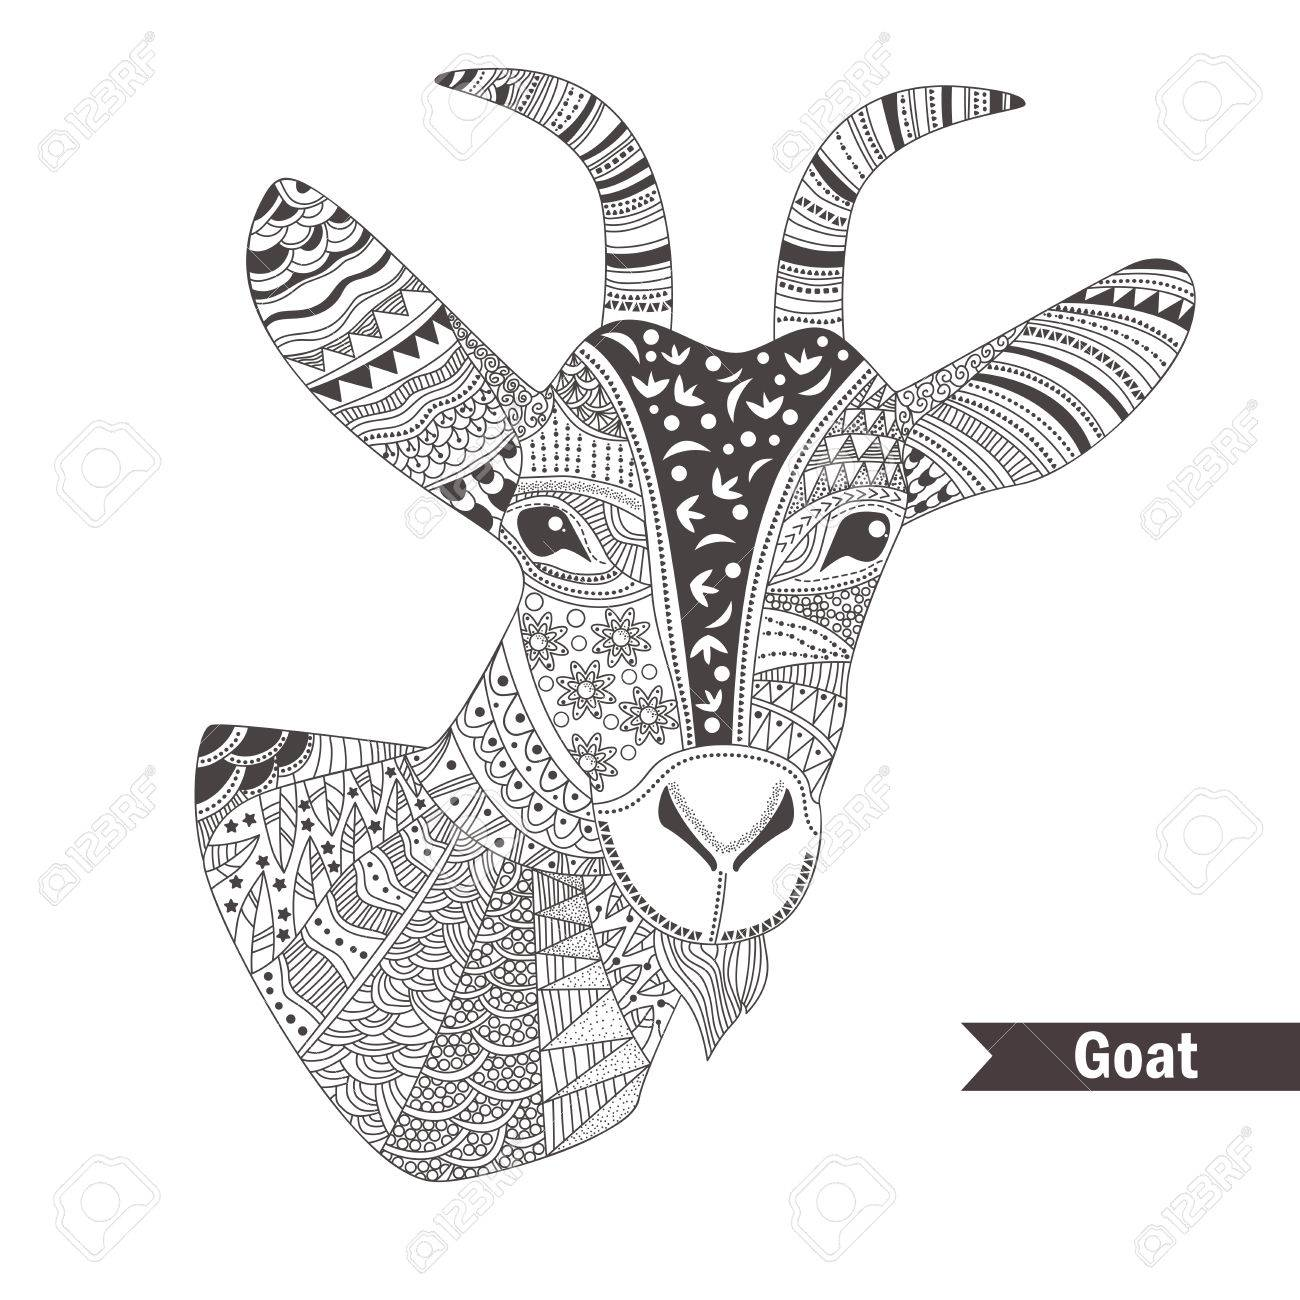 Free Printable Goat Coloring Pages For Kids | Malvorlagen tiere ... | 1300x1300